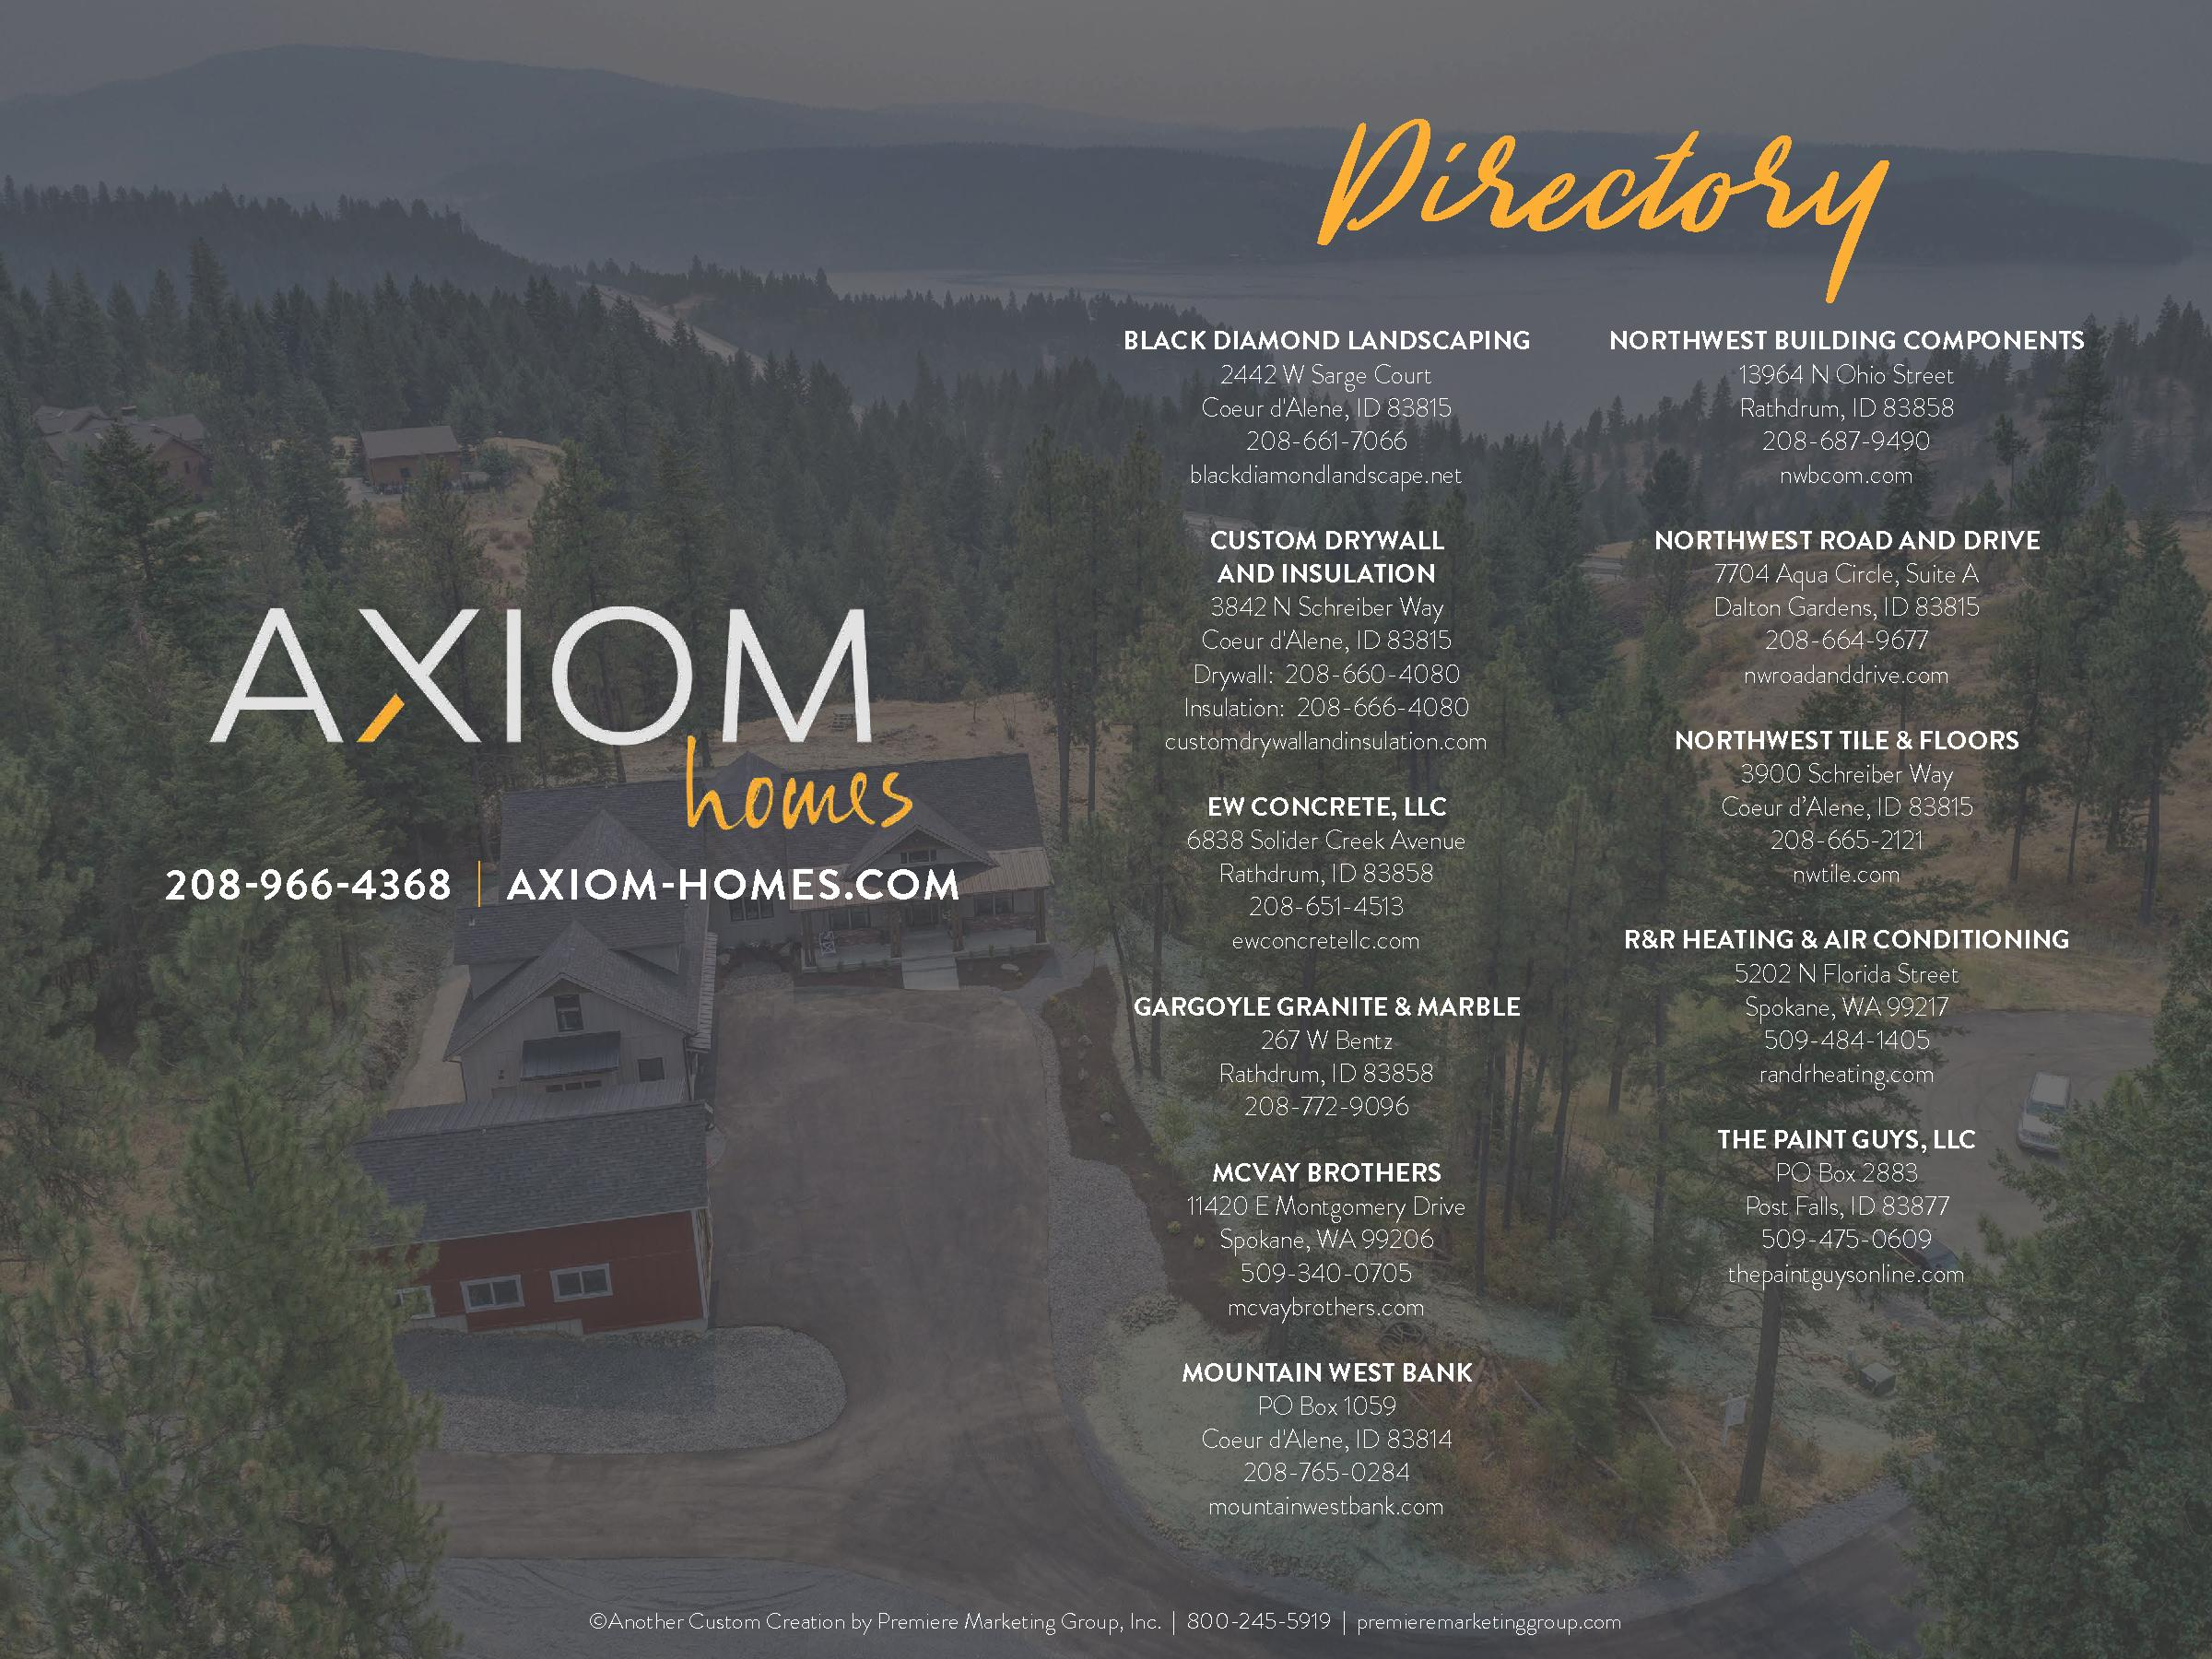 axiom-homes_digital-interactive_id_6.11.18_8.jpg